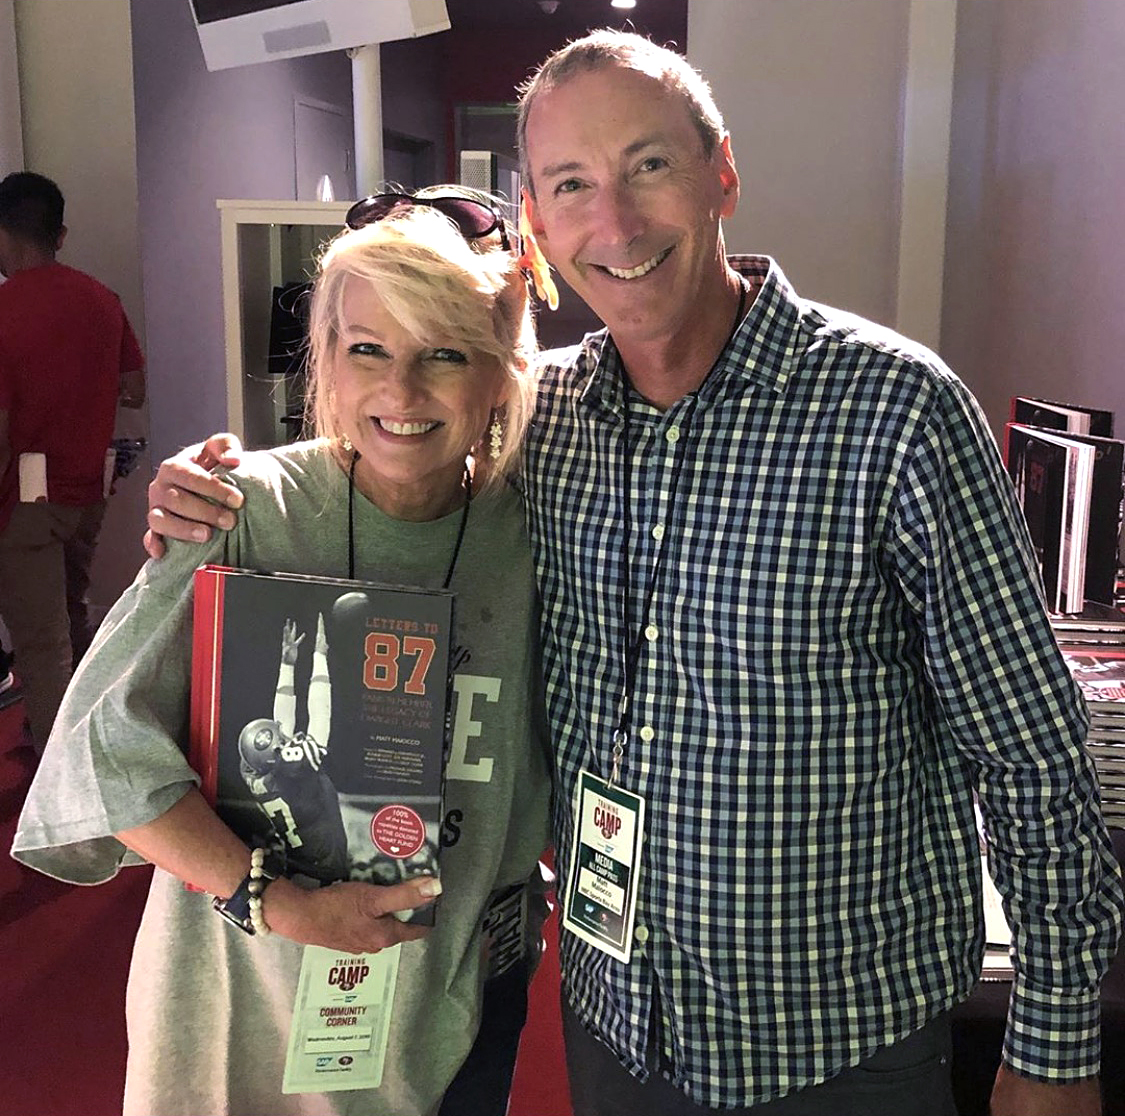 @MaioccoNBCS - So many great moments from the week around the release of #lettersto87. But this is No. 1. I met Lucy Wedemeyer. She is an amazing person.